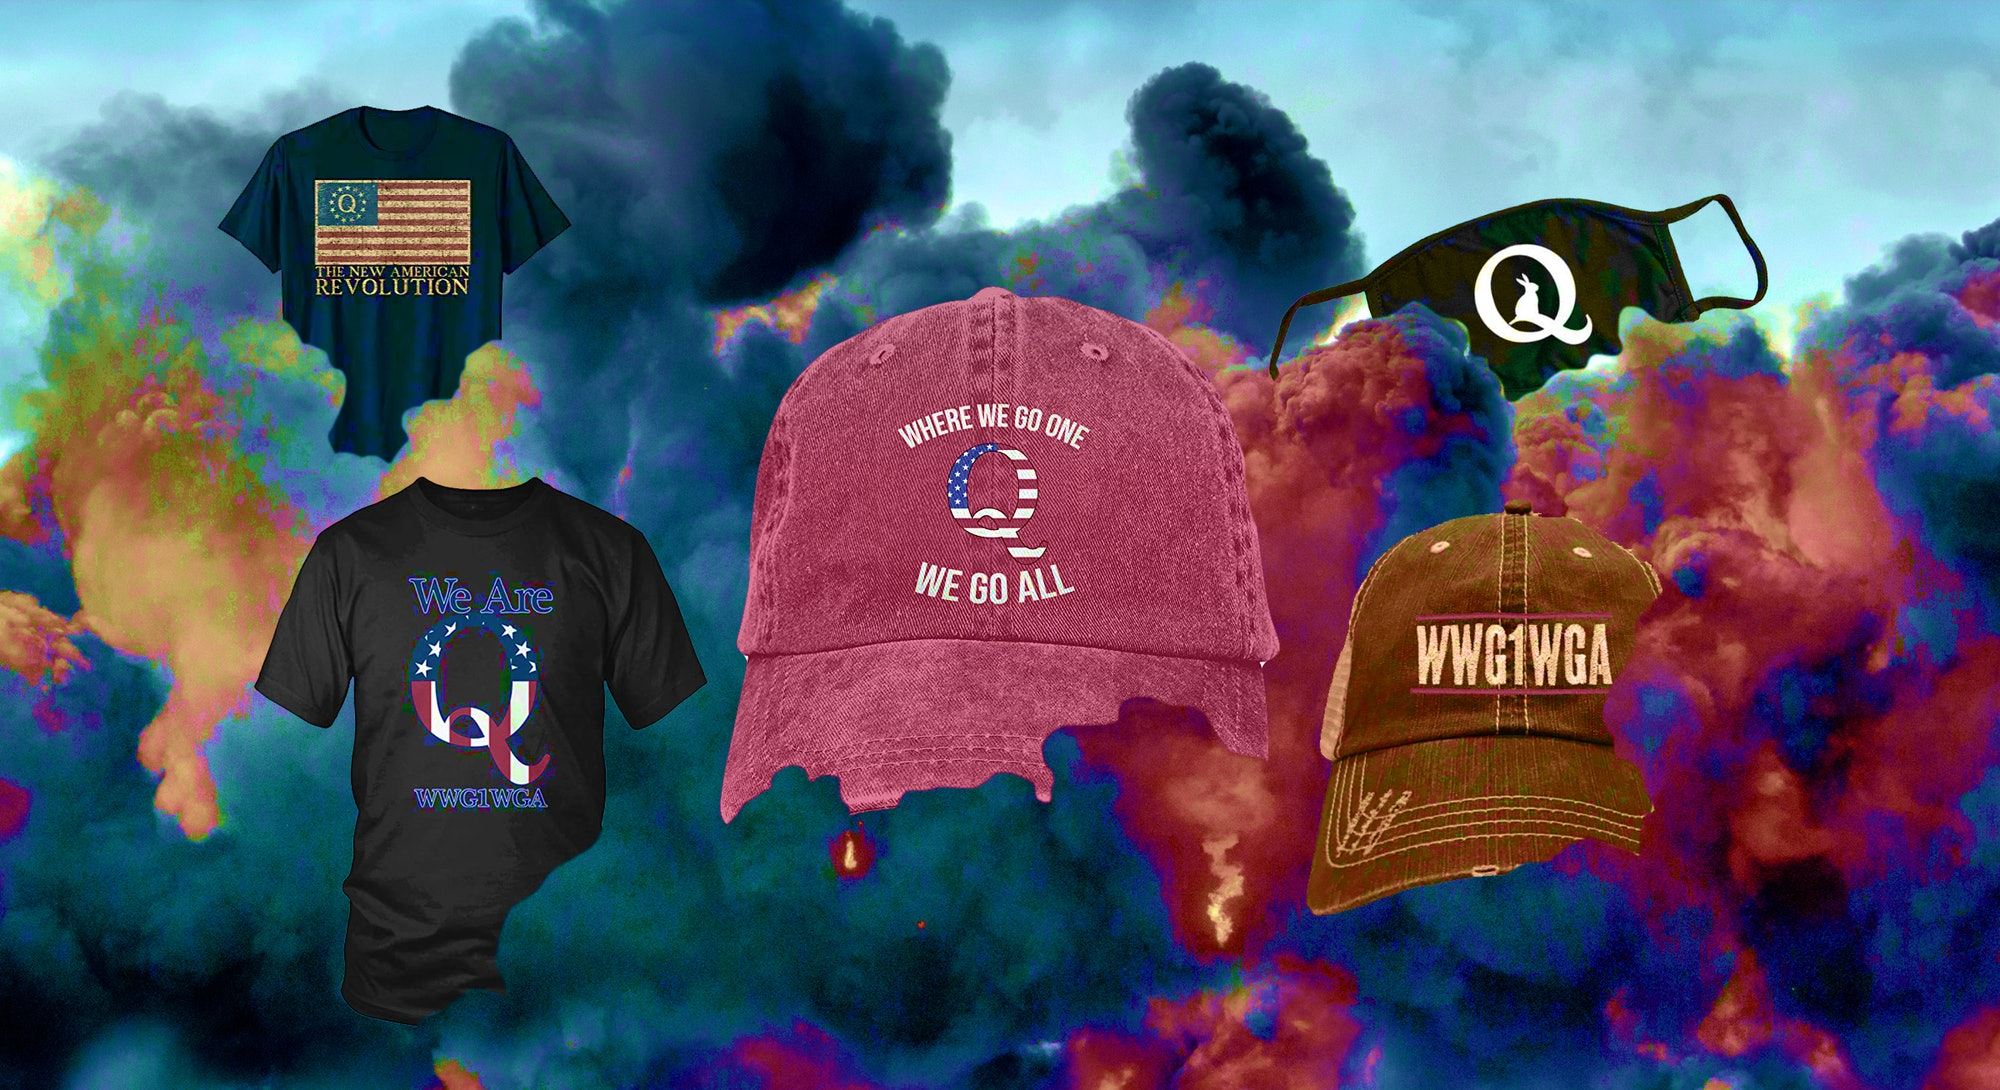 QAnon merch goes a long way in legitimizing the conspiracy theory, say experts. It also enriches the entrepreneurs who make the hats, masks, and shirts.